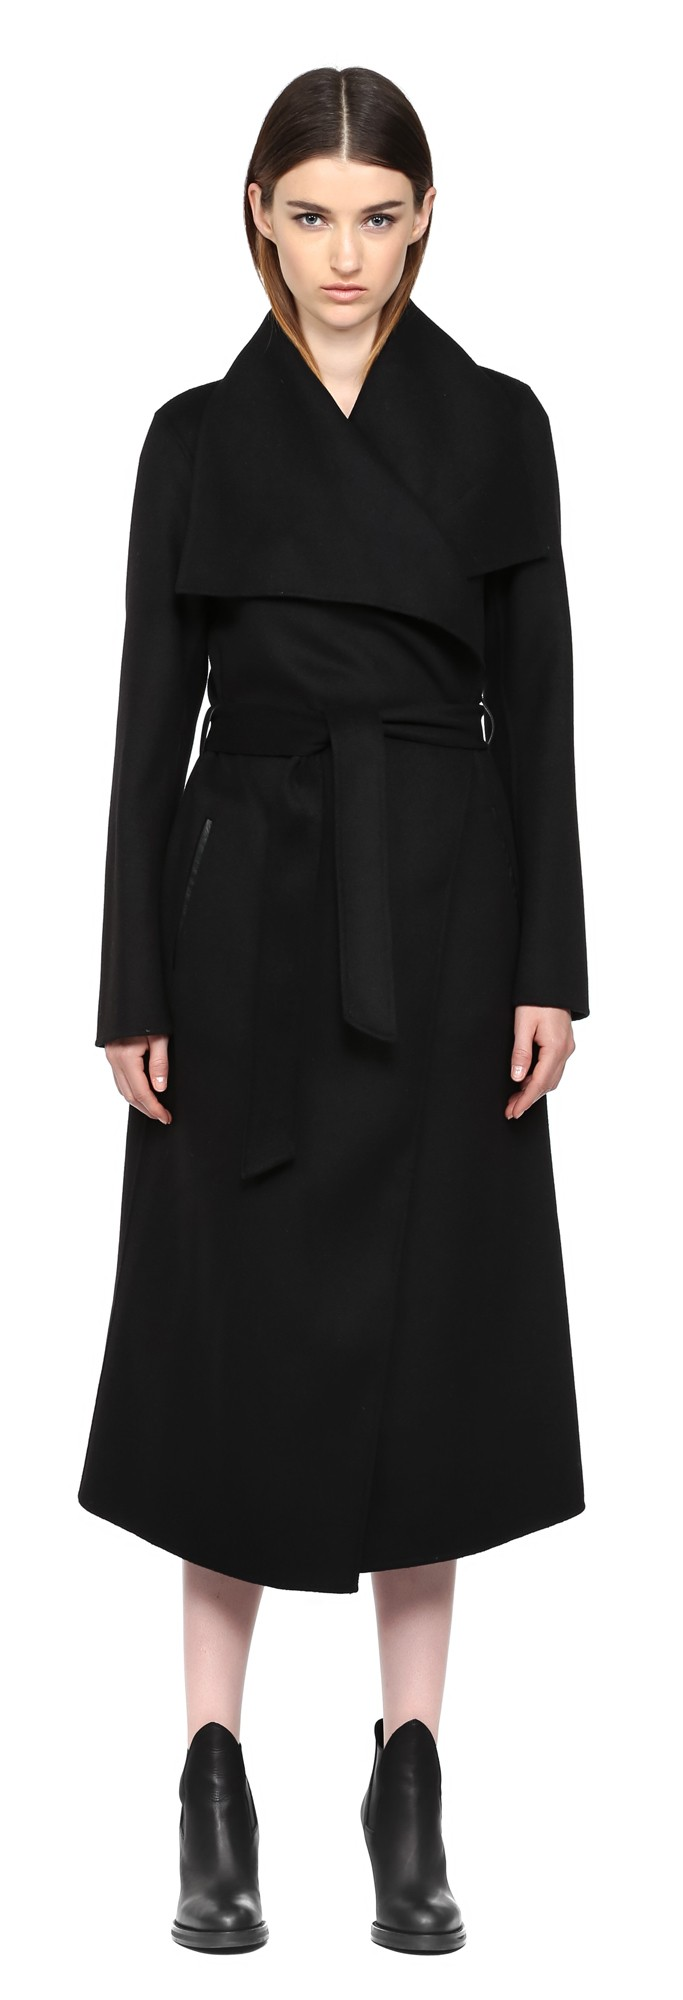 Black Long Doubleface Wool Coat Mackage Women